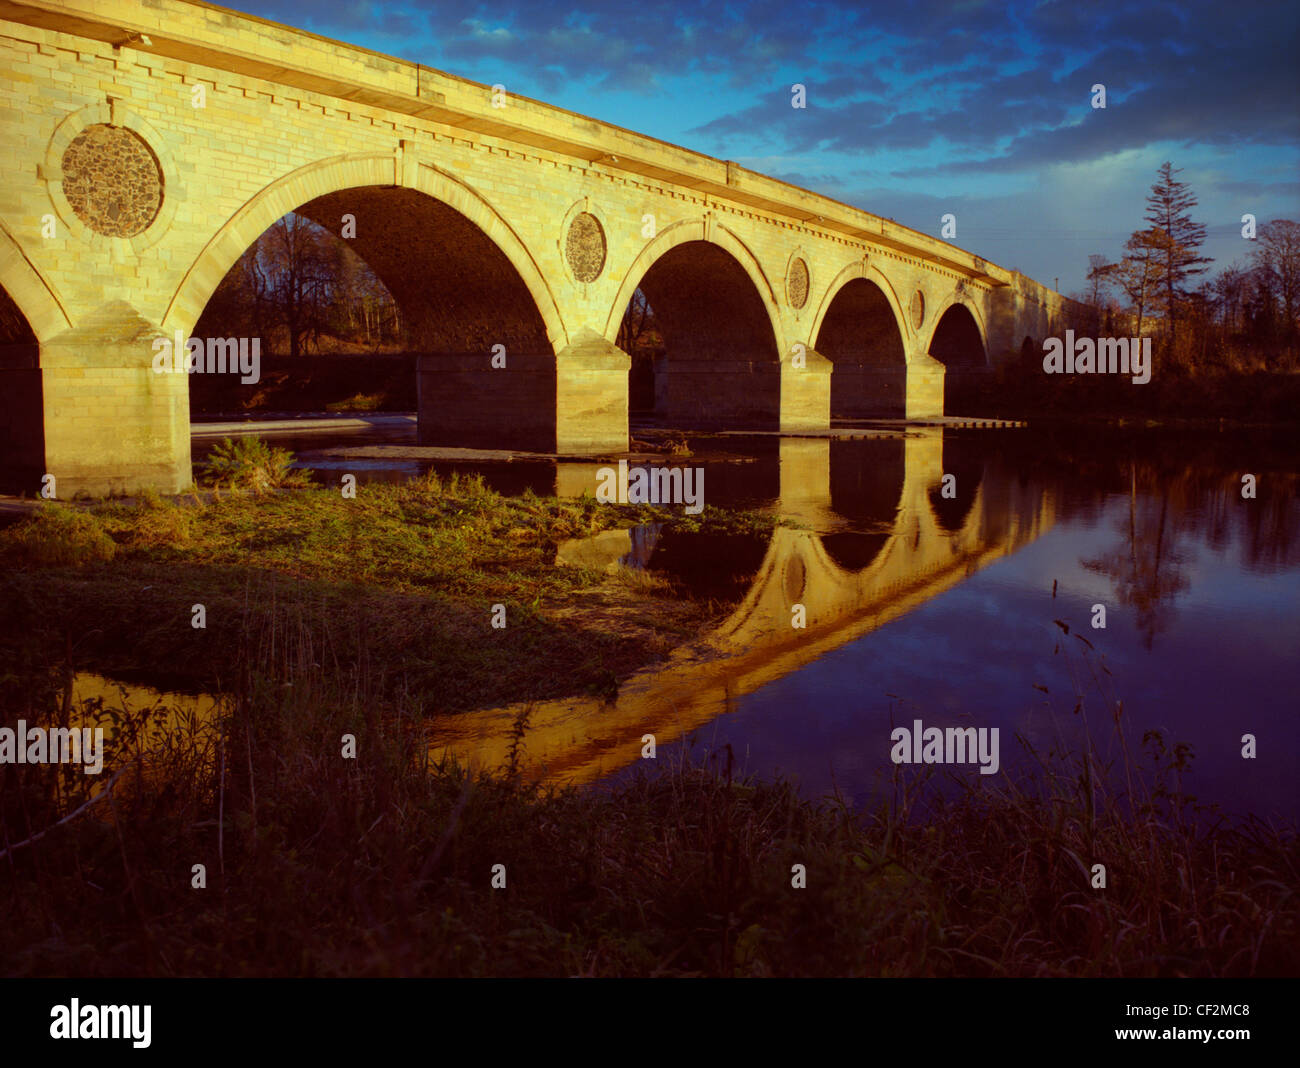 Coldstream Bridge spanning the River Tweed to connect Coldstream in Scotland with Cornhill-on-Tweed in England. - Stock Image